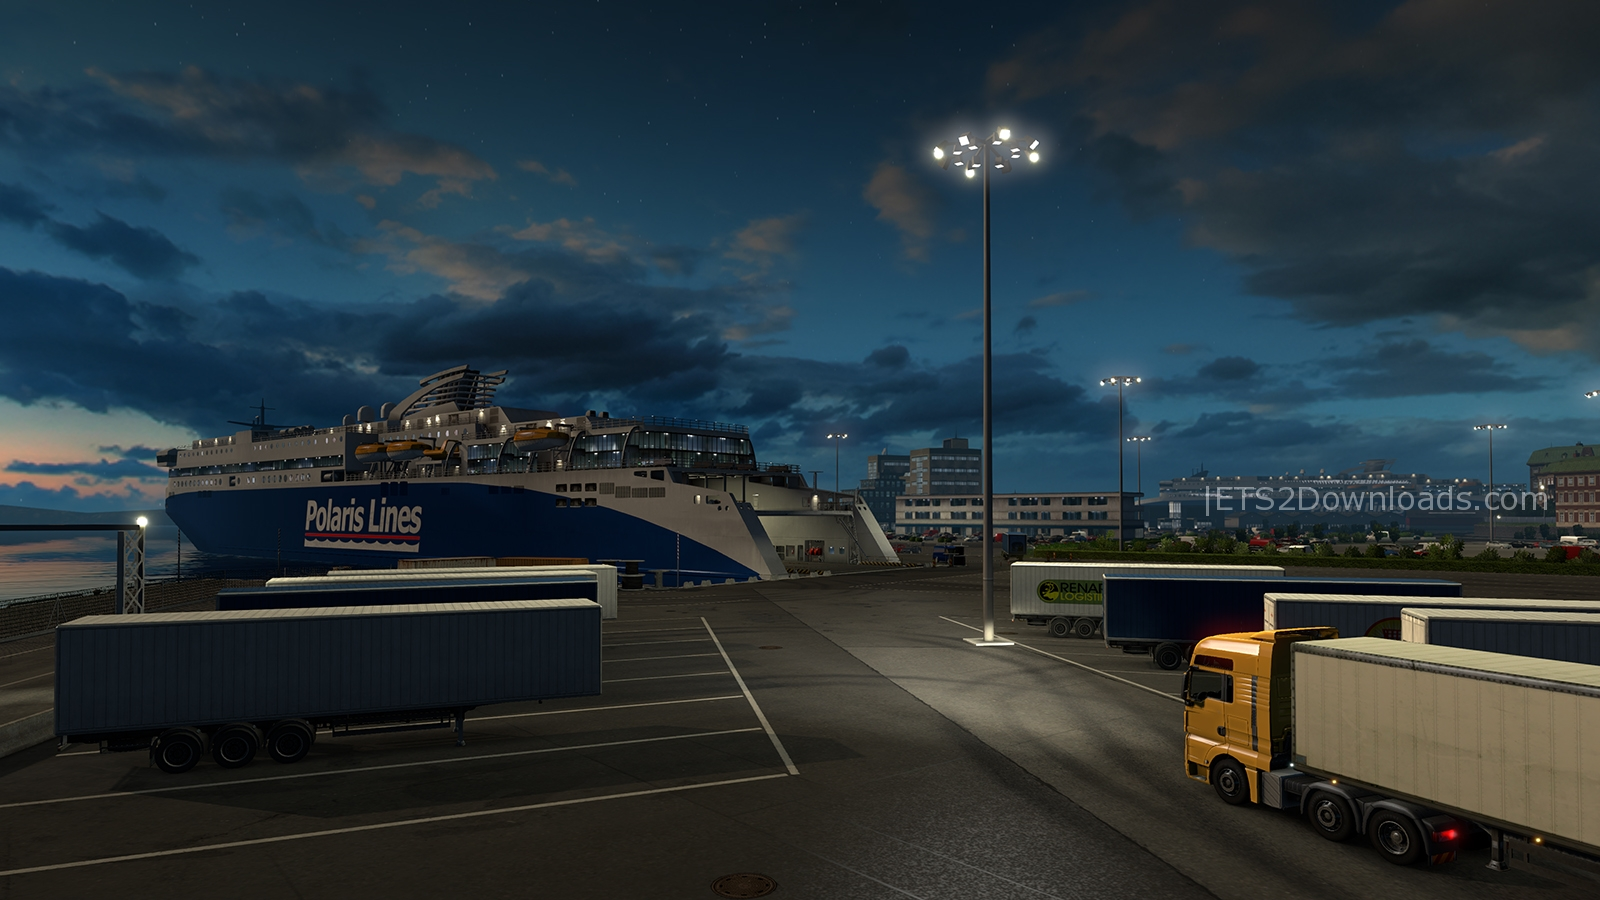 oslo-the-biggest-city-in-scandinavia-dlc-8